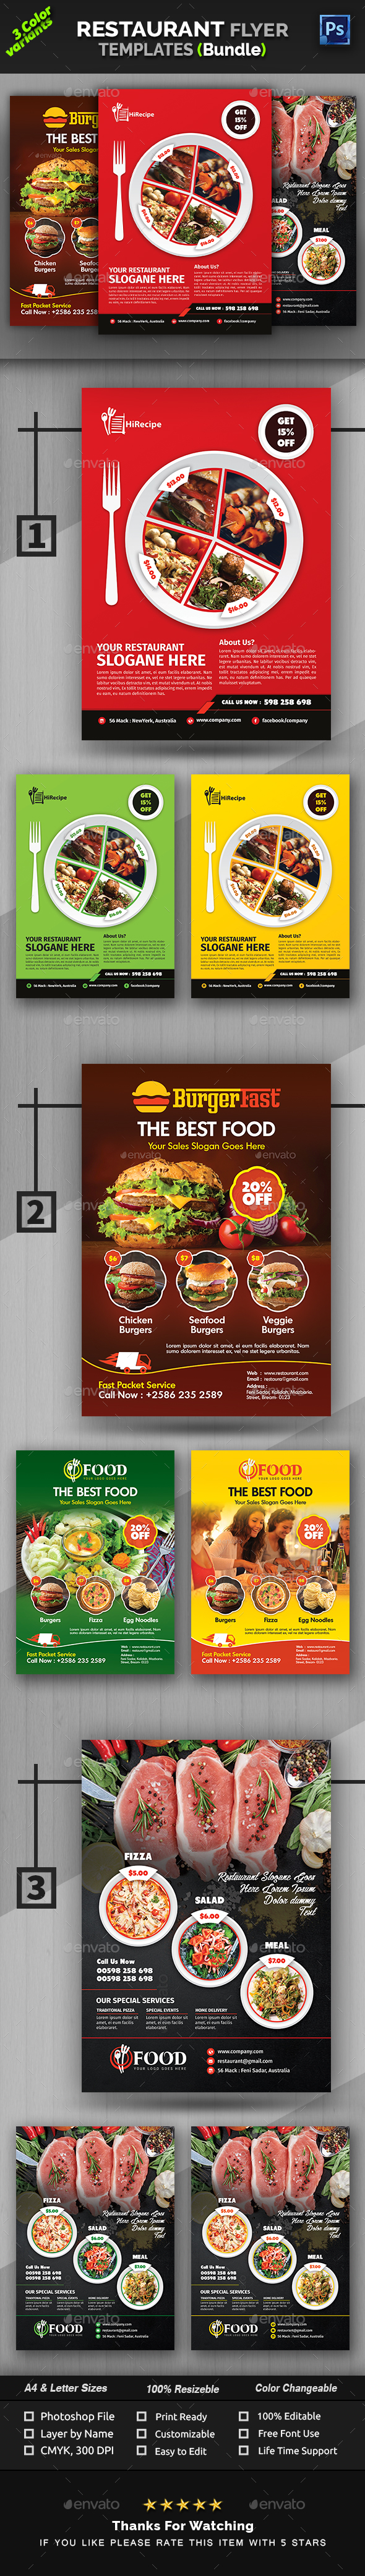 Restaurant Flyer Bundle - Restaurant Flyers